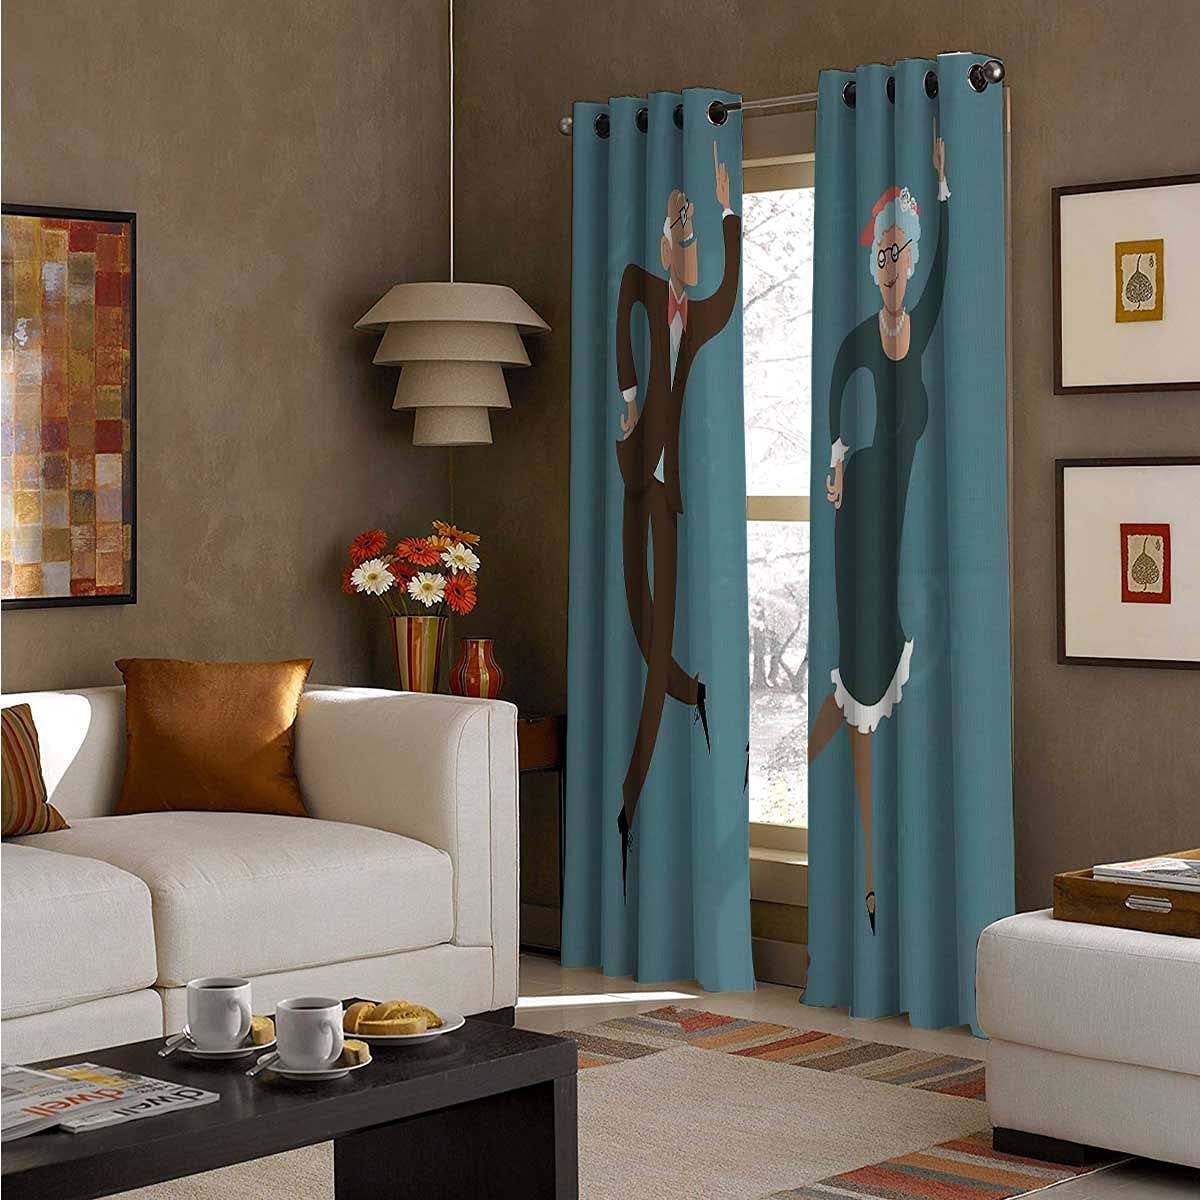 Soundproof sold out Curtains 96 Inch Length Ranking TOP11 Thermal Elderly Swing Dance